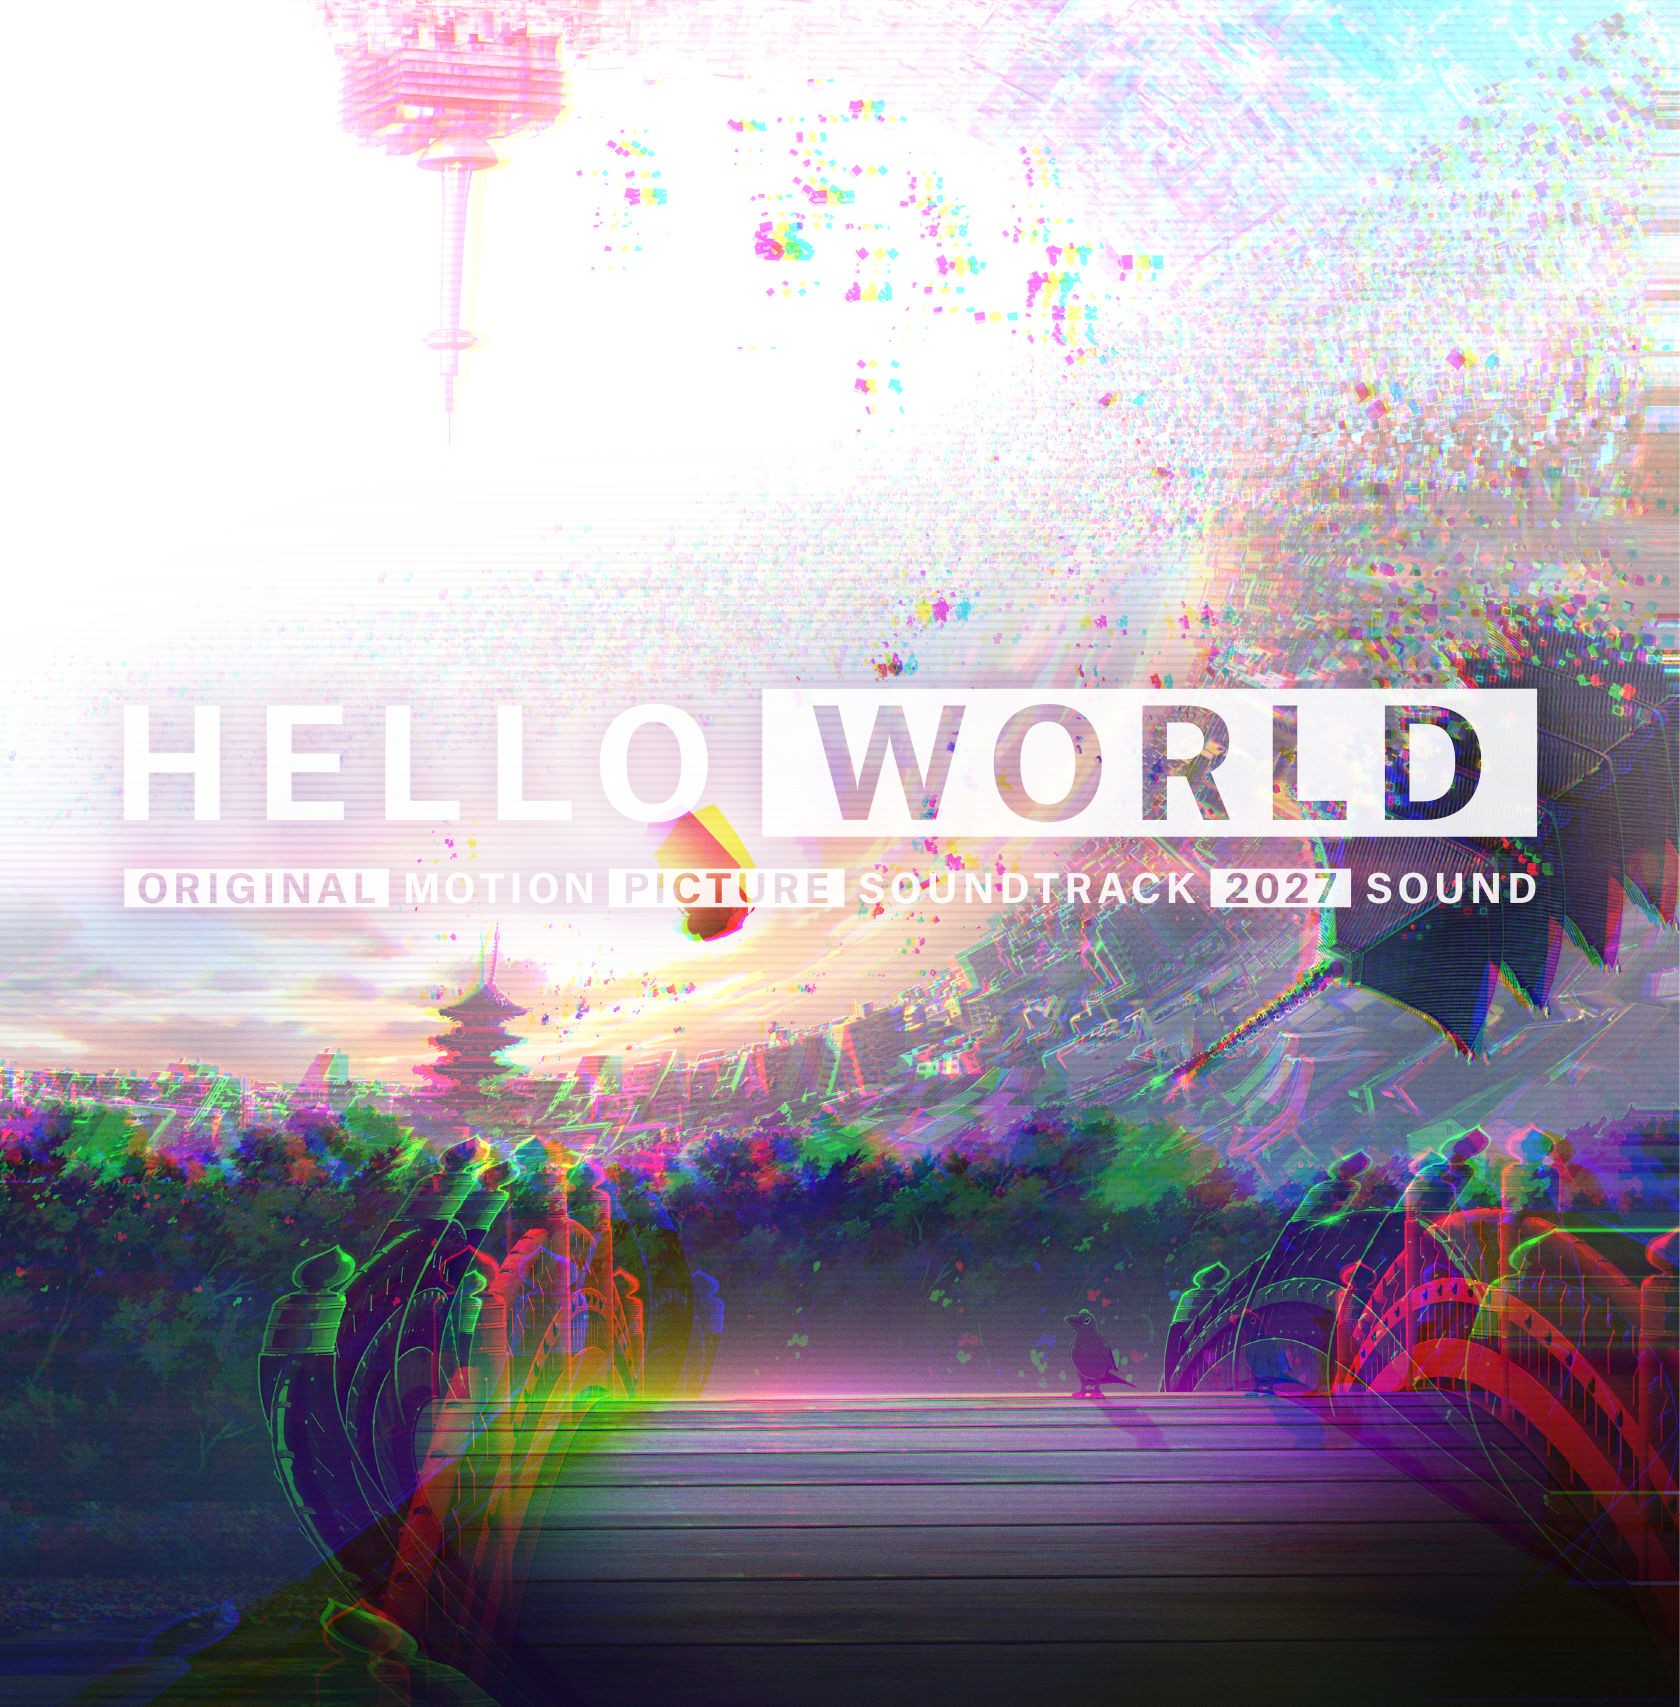 2027Sound – HELLO WORLD ORIGINAL MOTION PICTURE SOUNDTRACK [FLAC 24bit/96kHz]